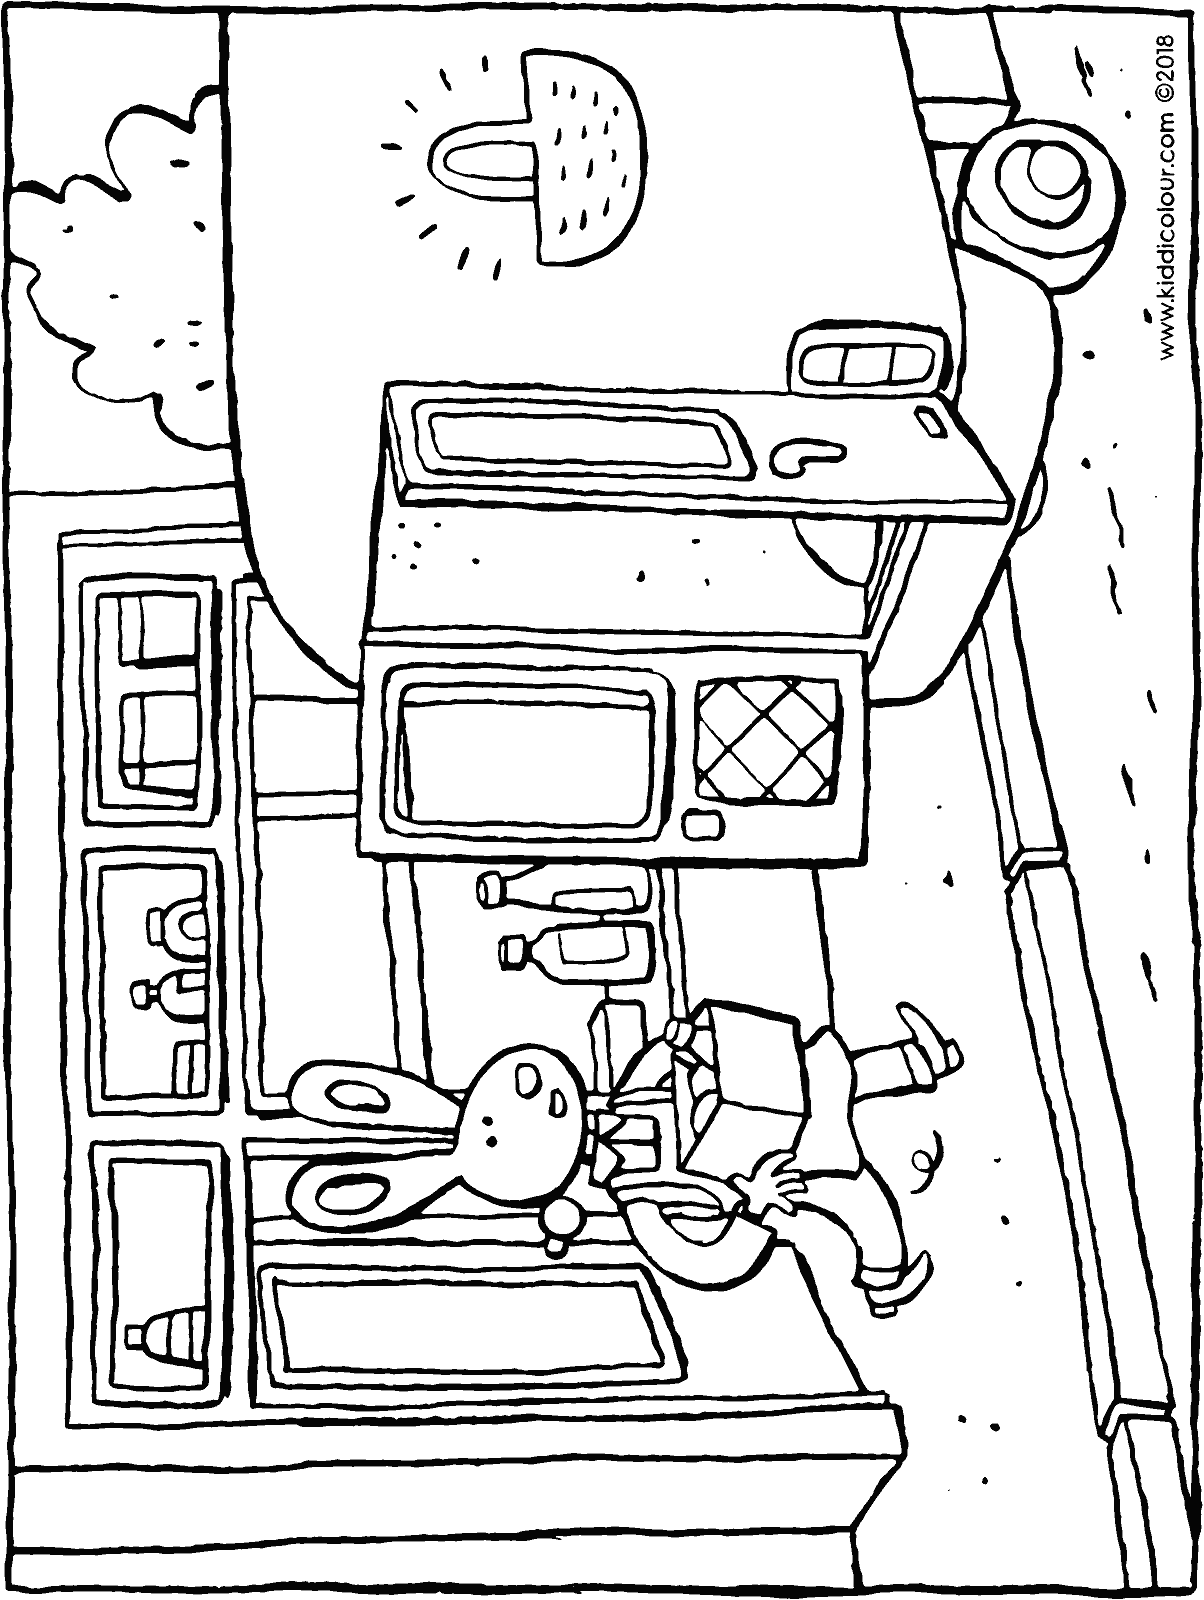 Boris's shop colouring page drawing picture 01H